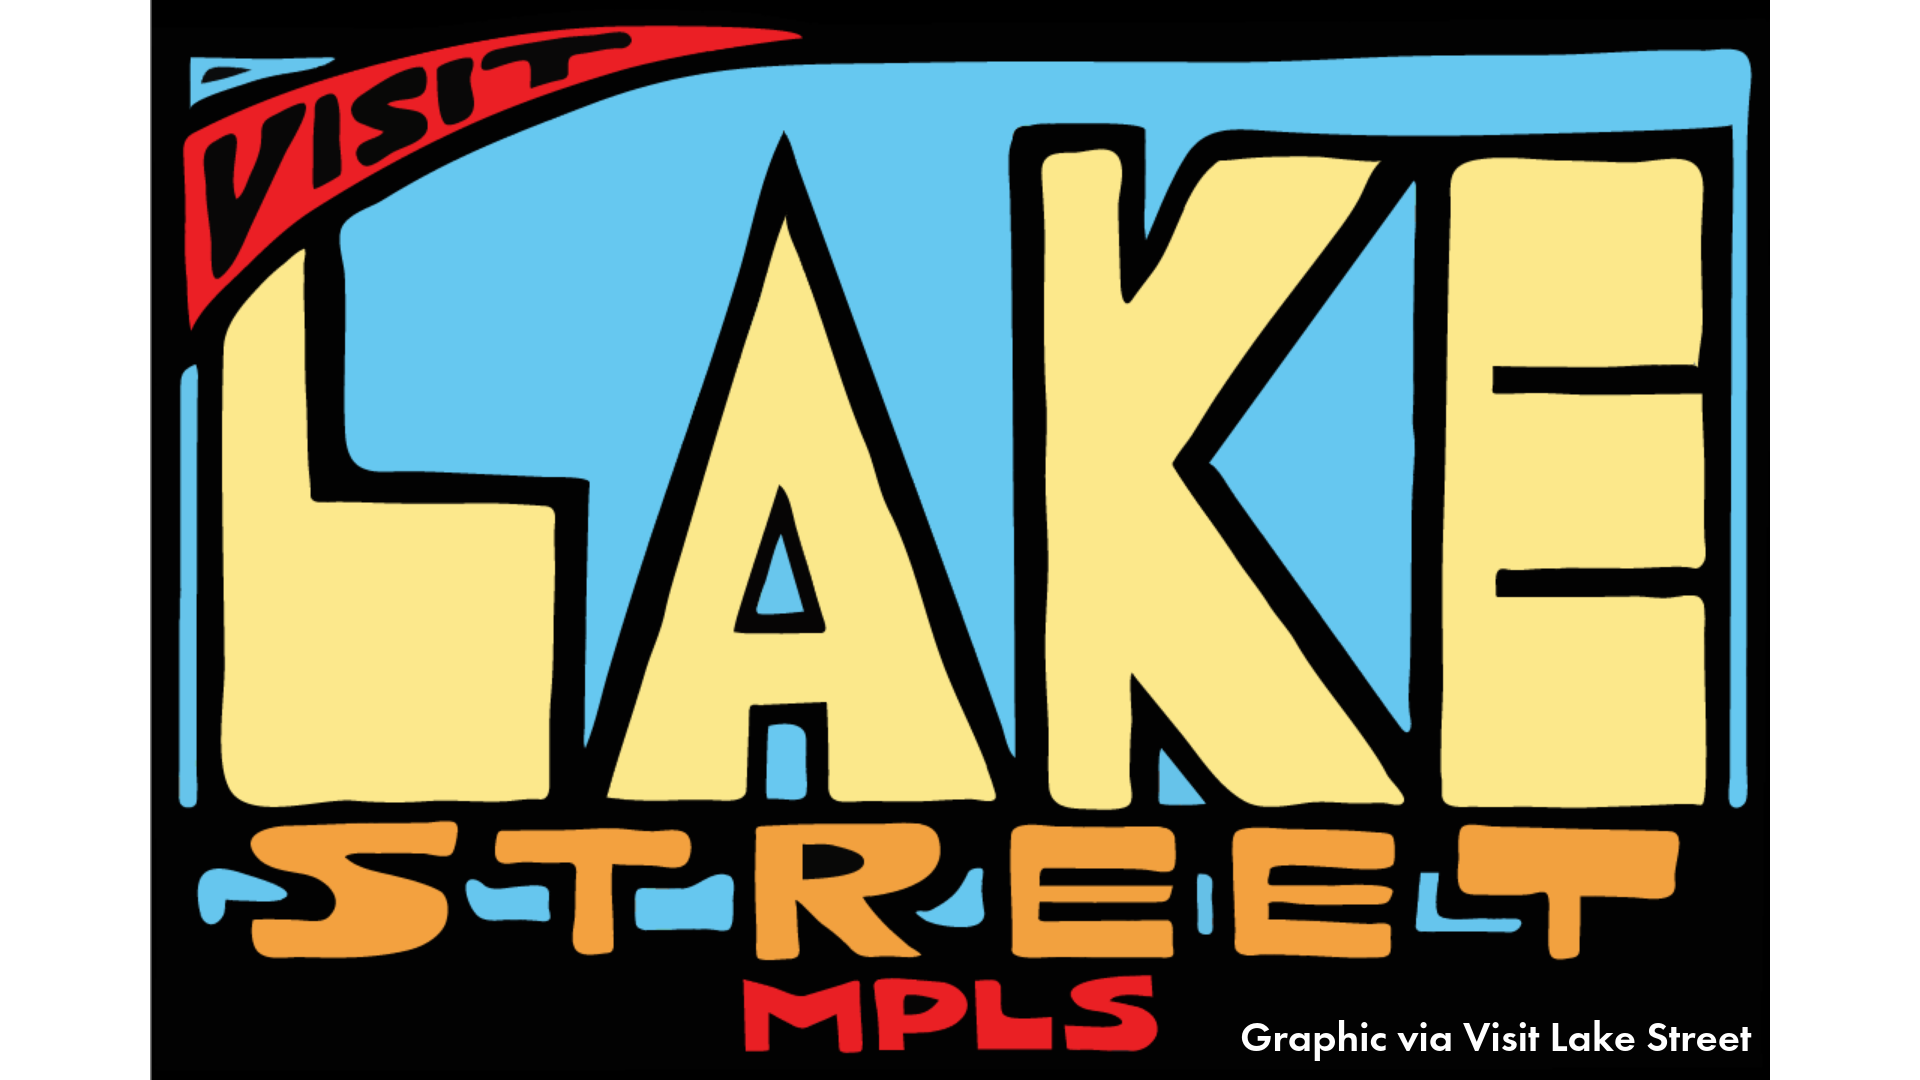 Colorful graphic by visit lake street mpls